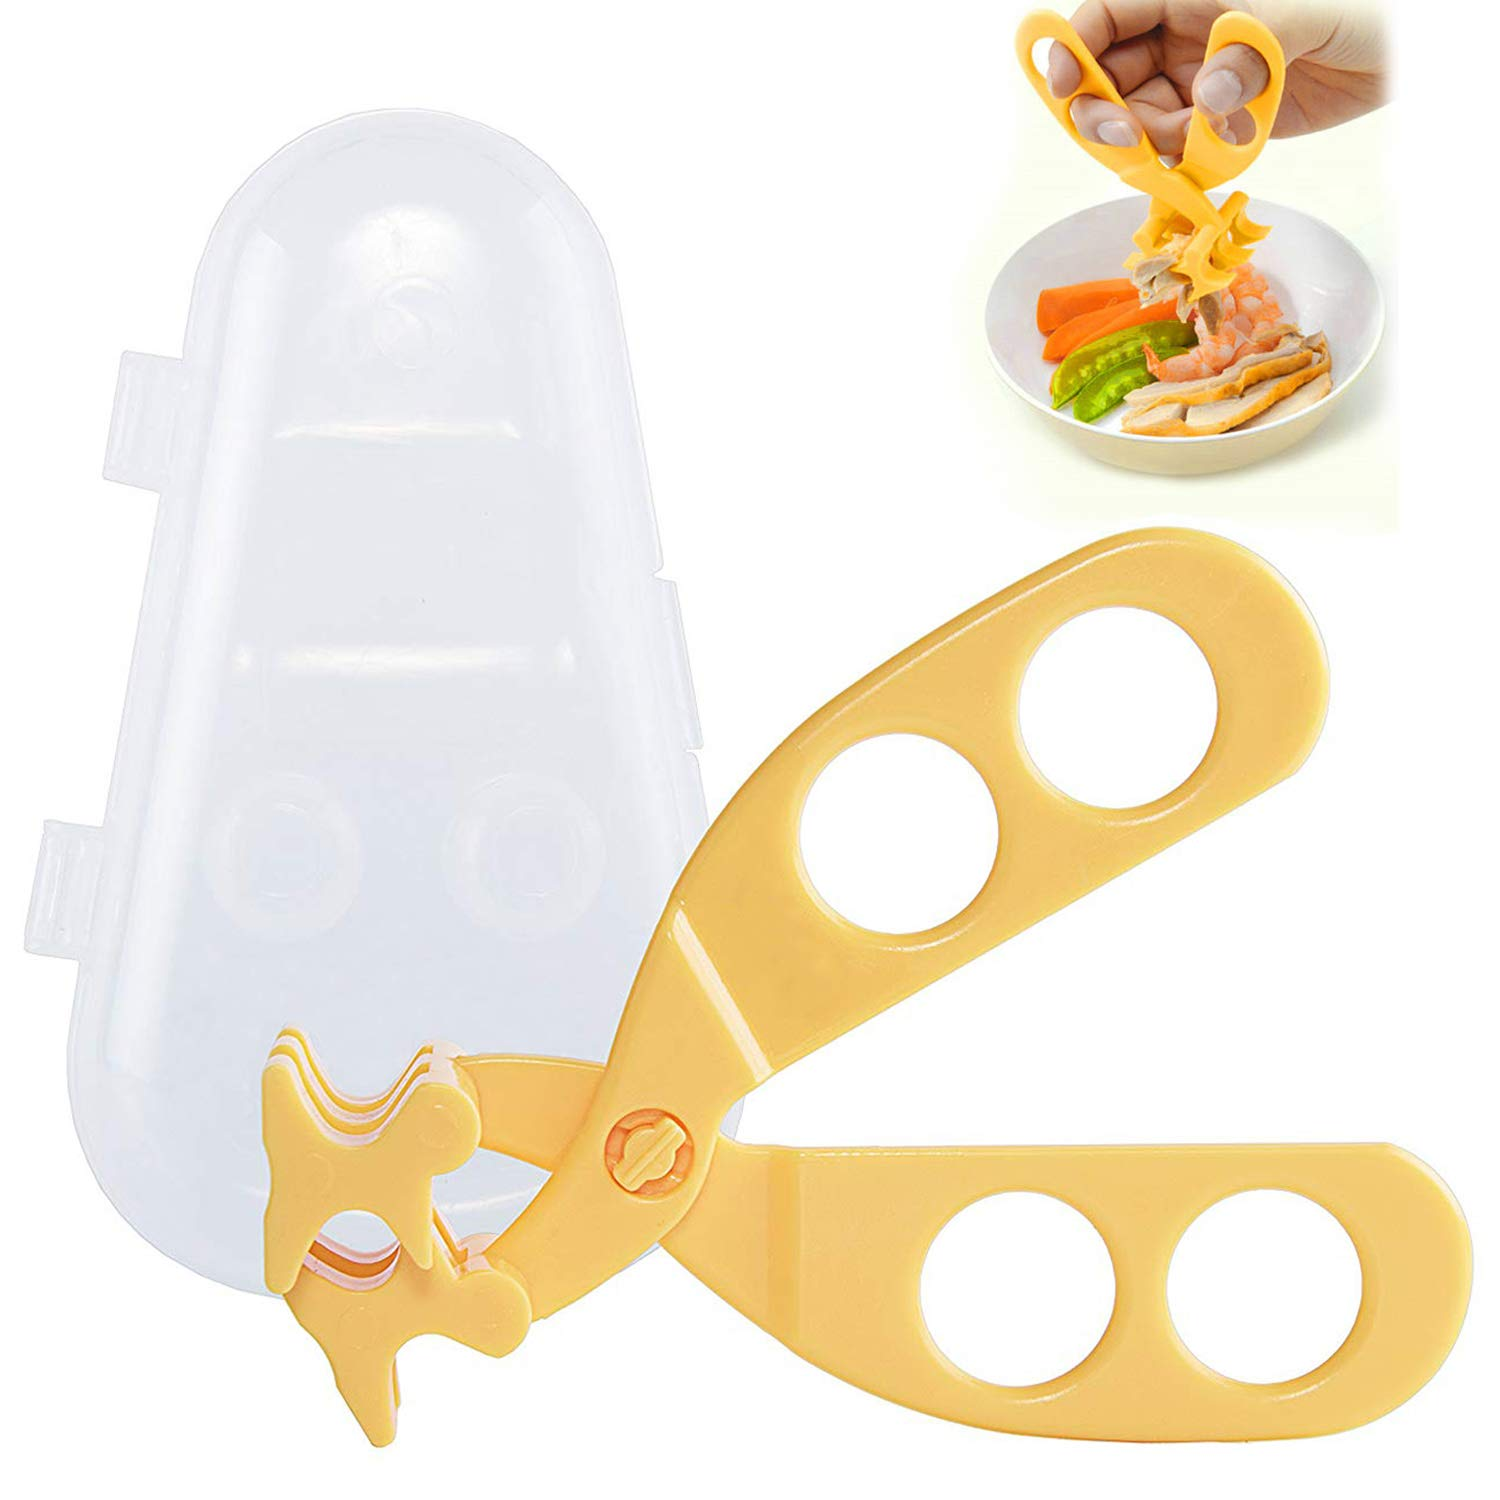 OBloved Baby Food Scissor Cutter, Multifunction Masher Grinder Chopper Crusher, Home and Kitchen Food Slicer Shears, Safe Feeding Tool with Travel Storage Case, Perfect for Babies & Toddlers